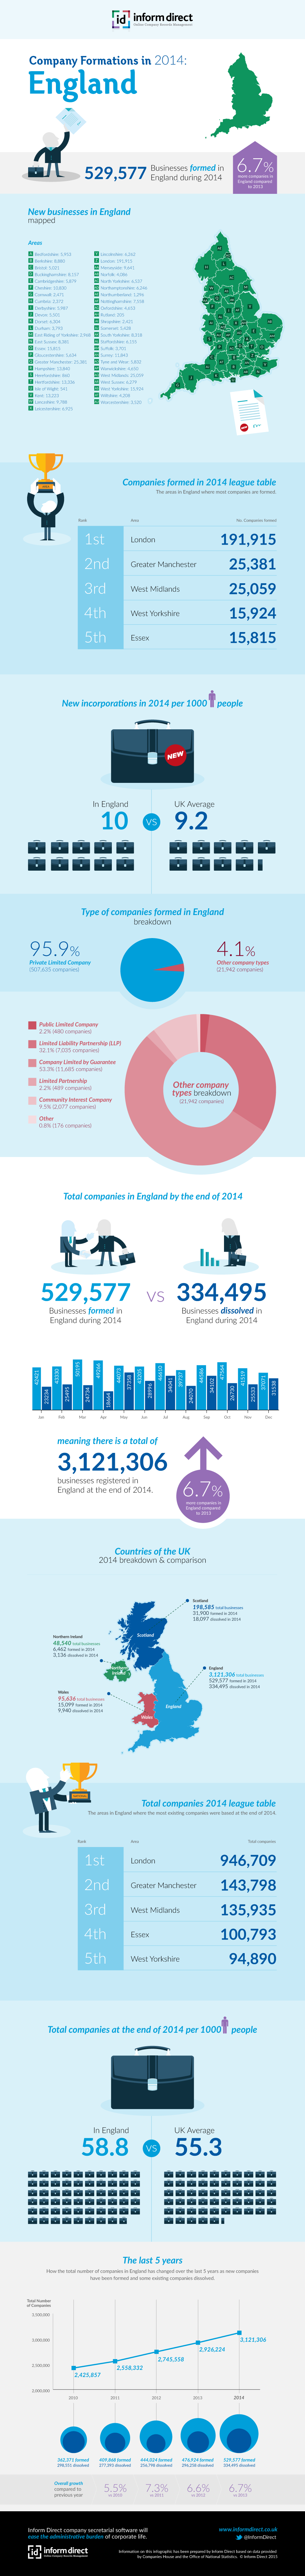 Inform Direct - Company Formations in England 2014 Infographic